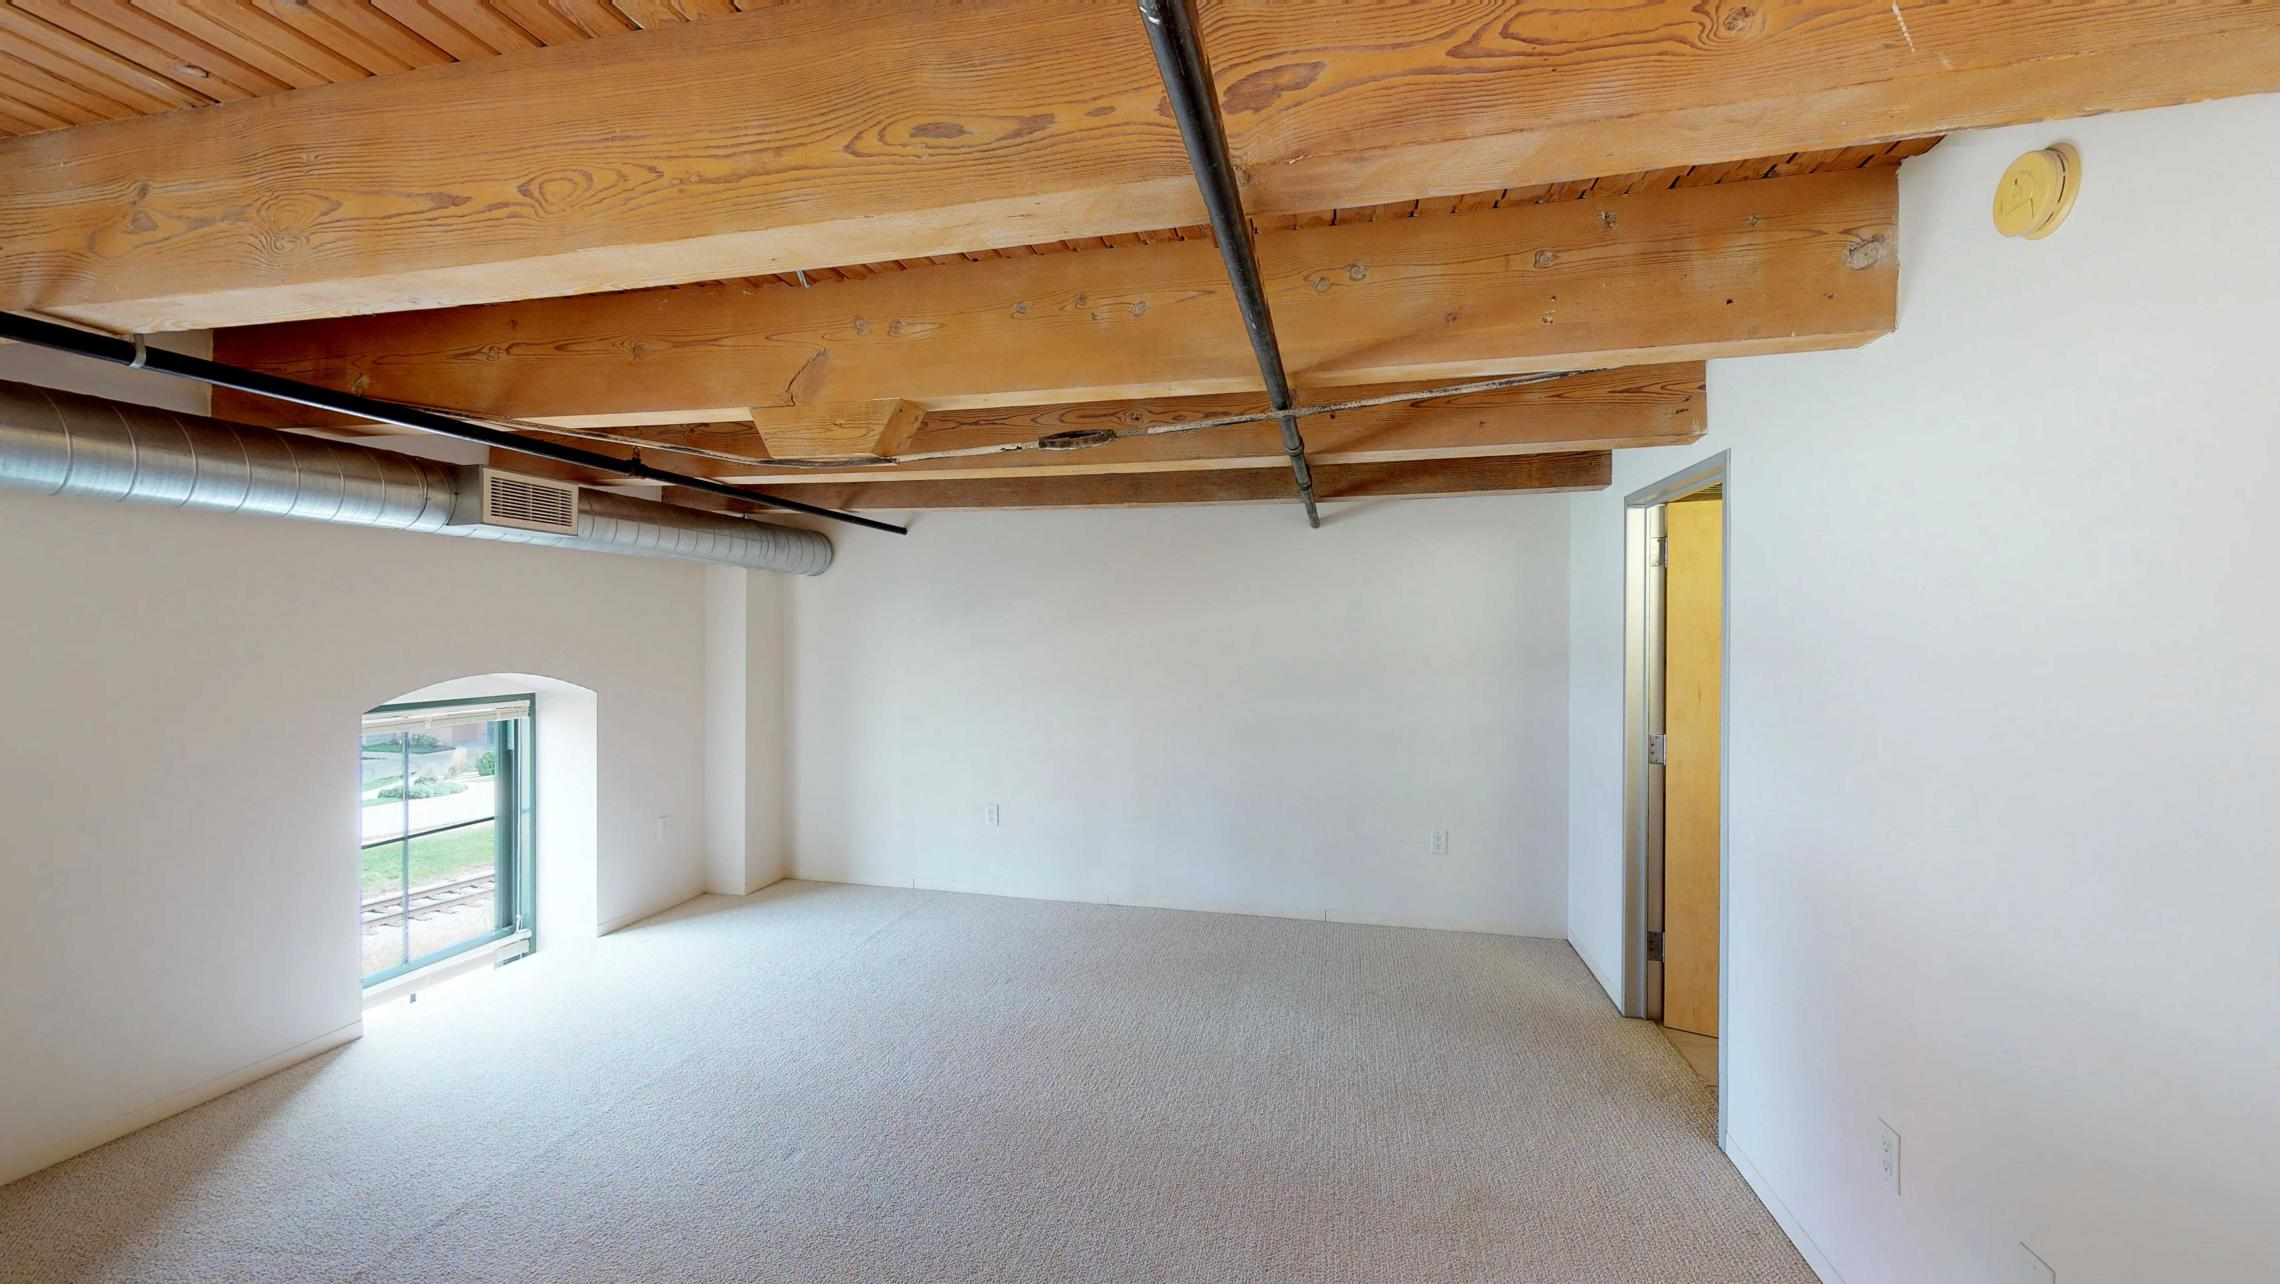 Tobacco-Lofts-E203--lofted-two-bedroom-Madison-downtown-exposed-brick-design-historic-balcony-view.jpg